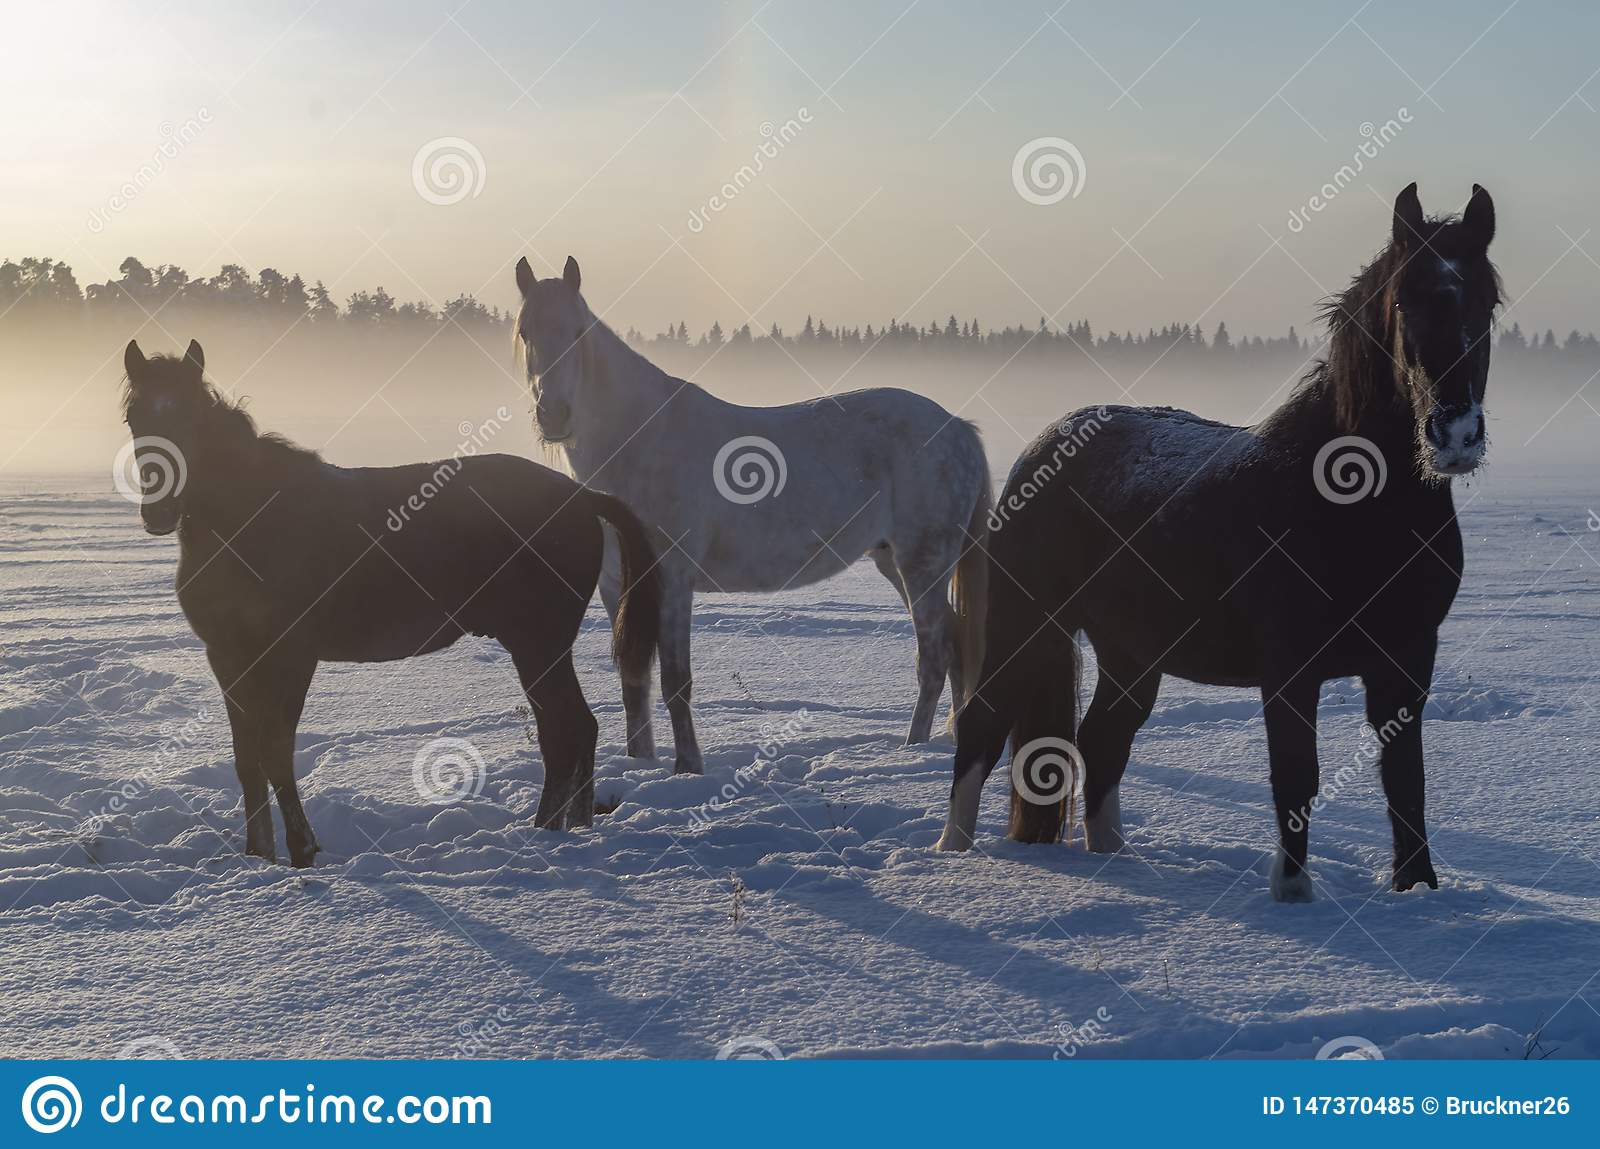 Three horses in the winter fog. A short Northern day.